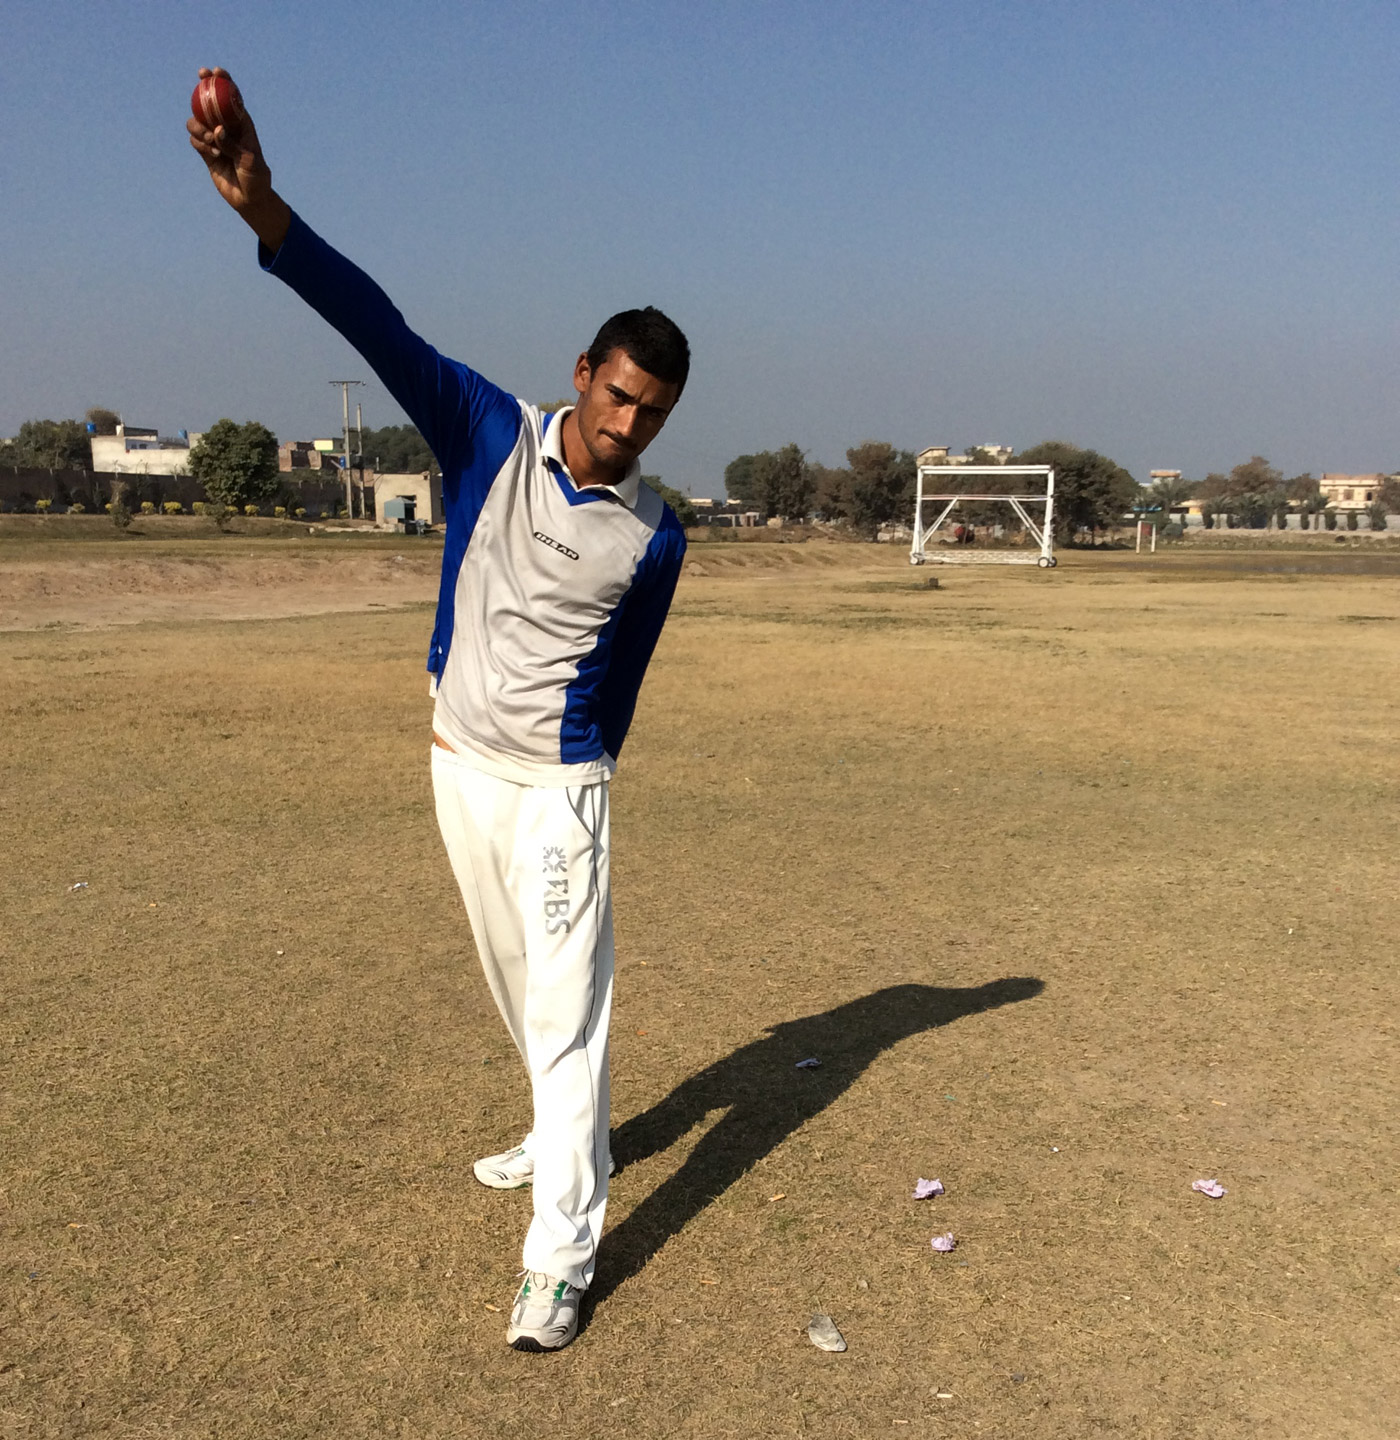 Zubair Ahmad works in a kitchen-utensils shop in Rabwah and plays for Fazl-e-Umar in his spare time